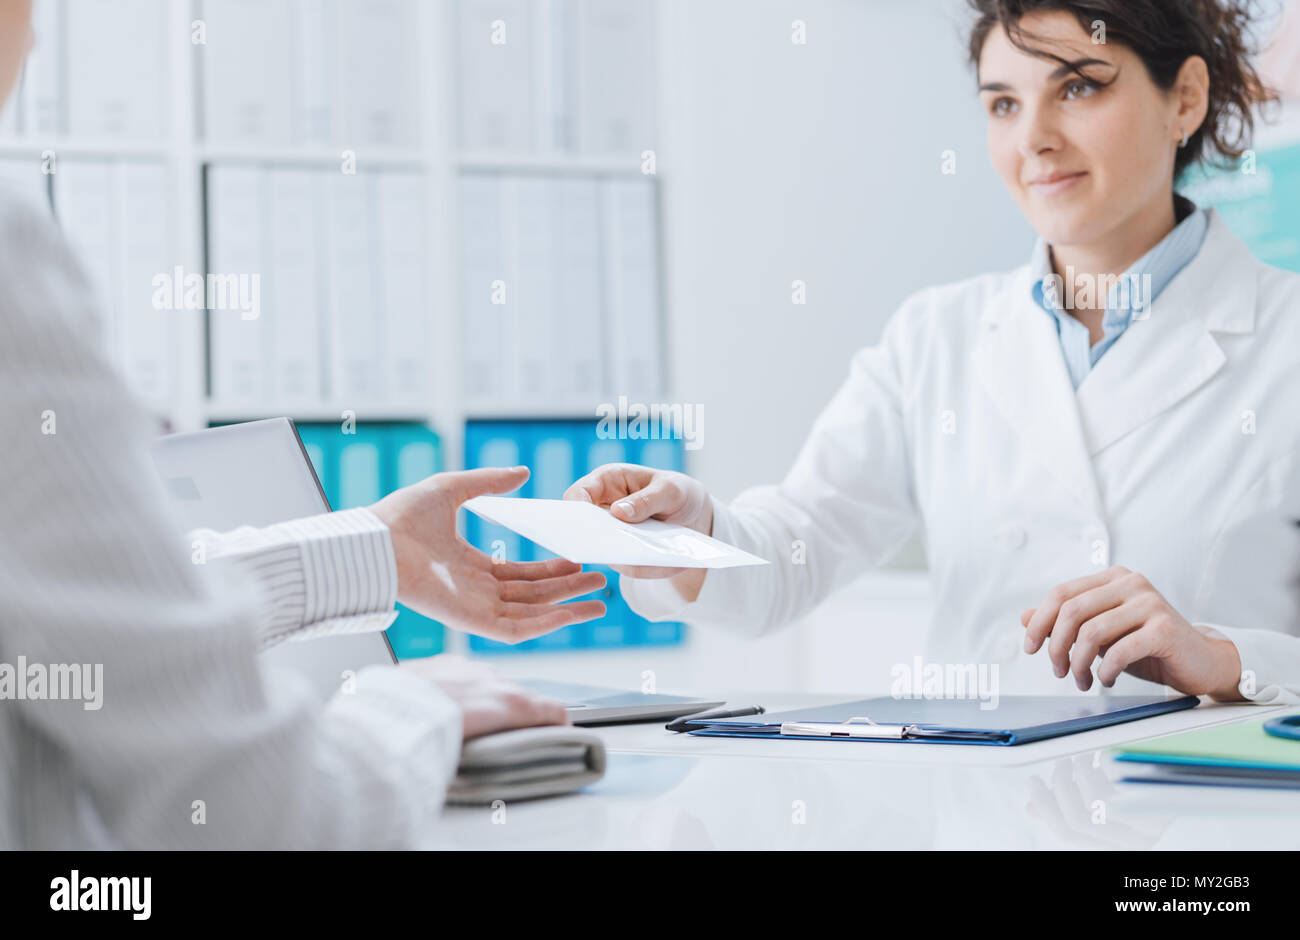 Doctor and patient meeting in the office, the doctor is giving a prescription and a medical report to a woman - Stock Image